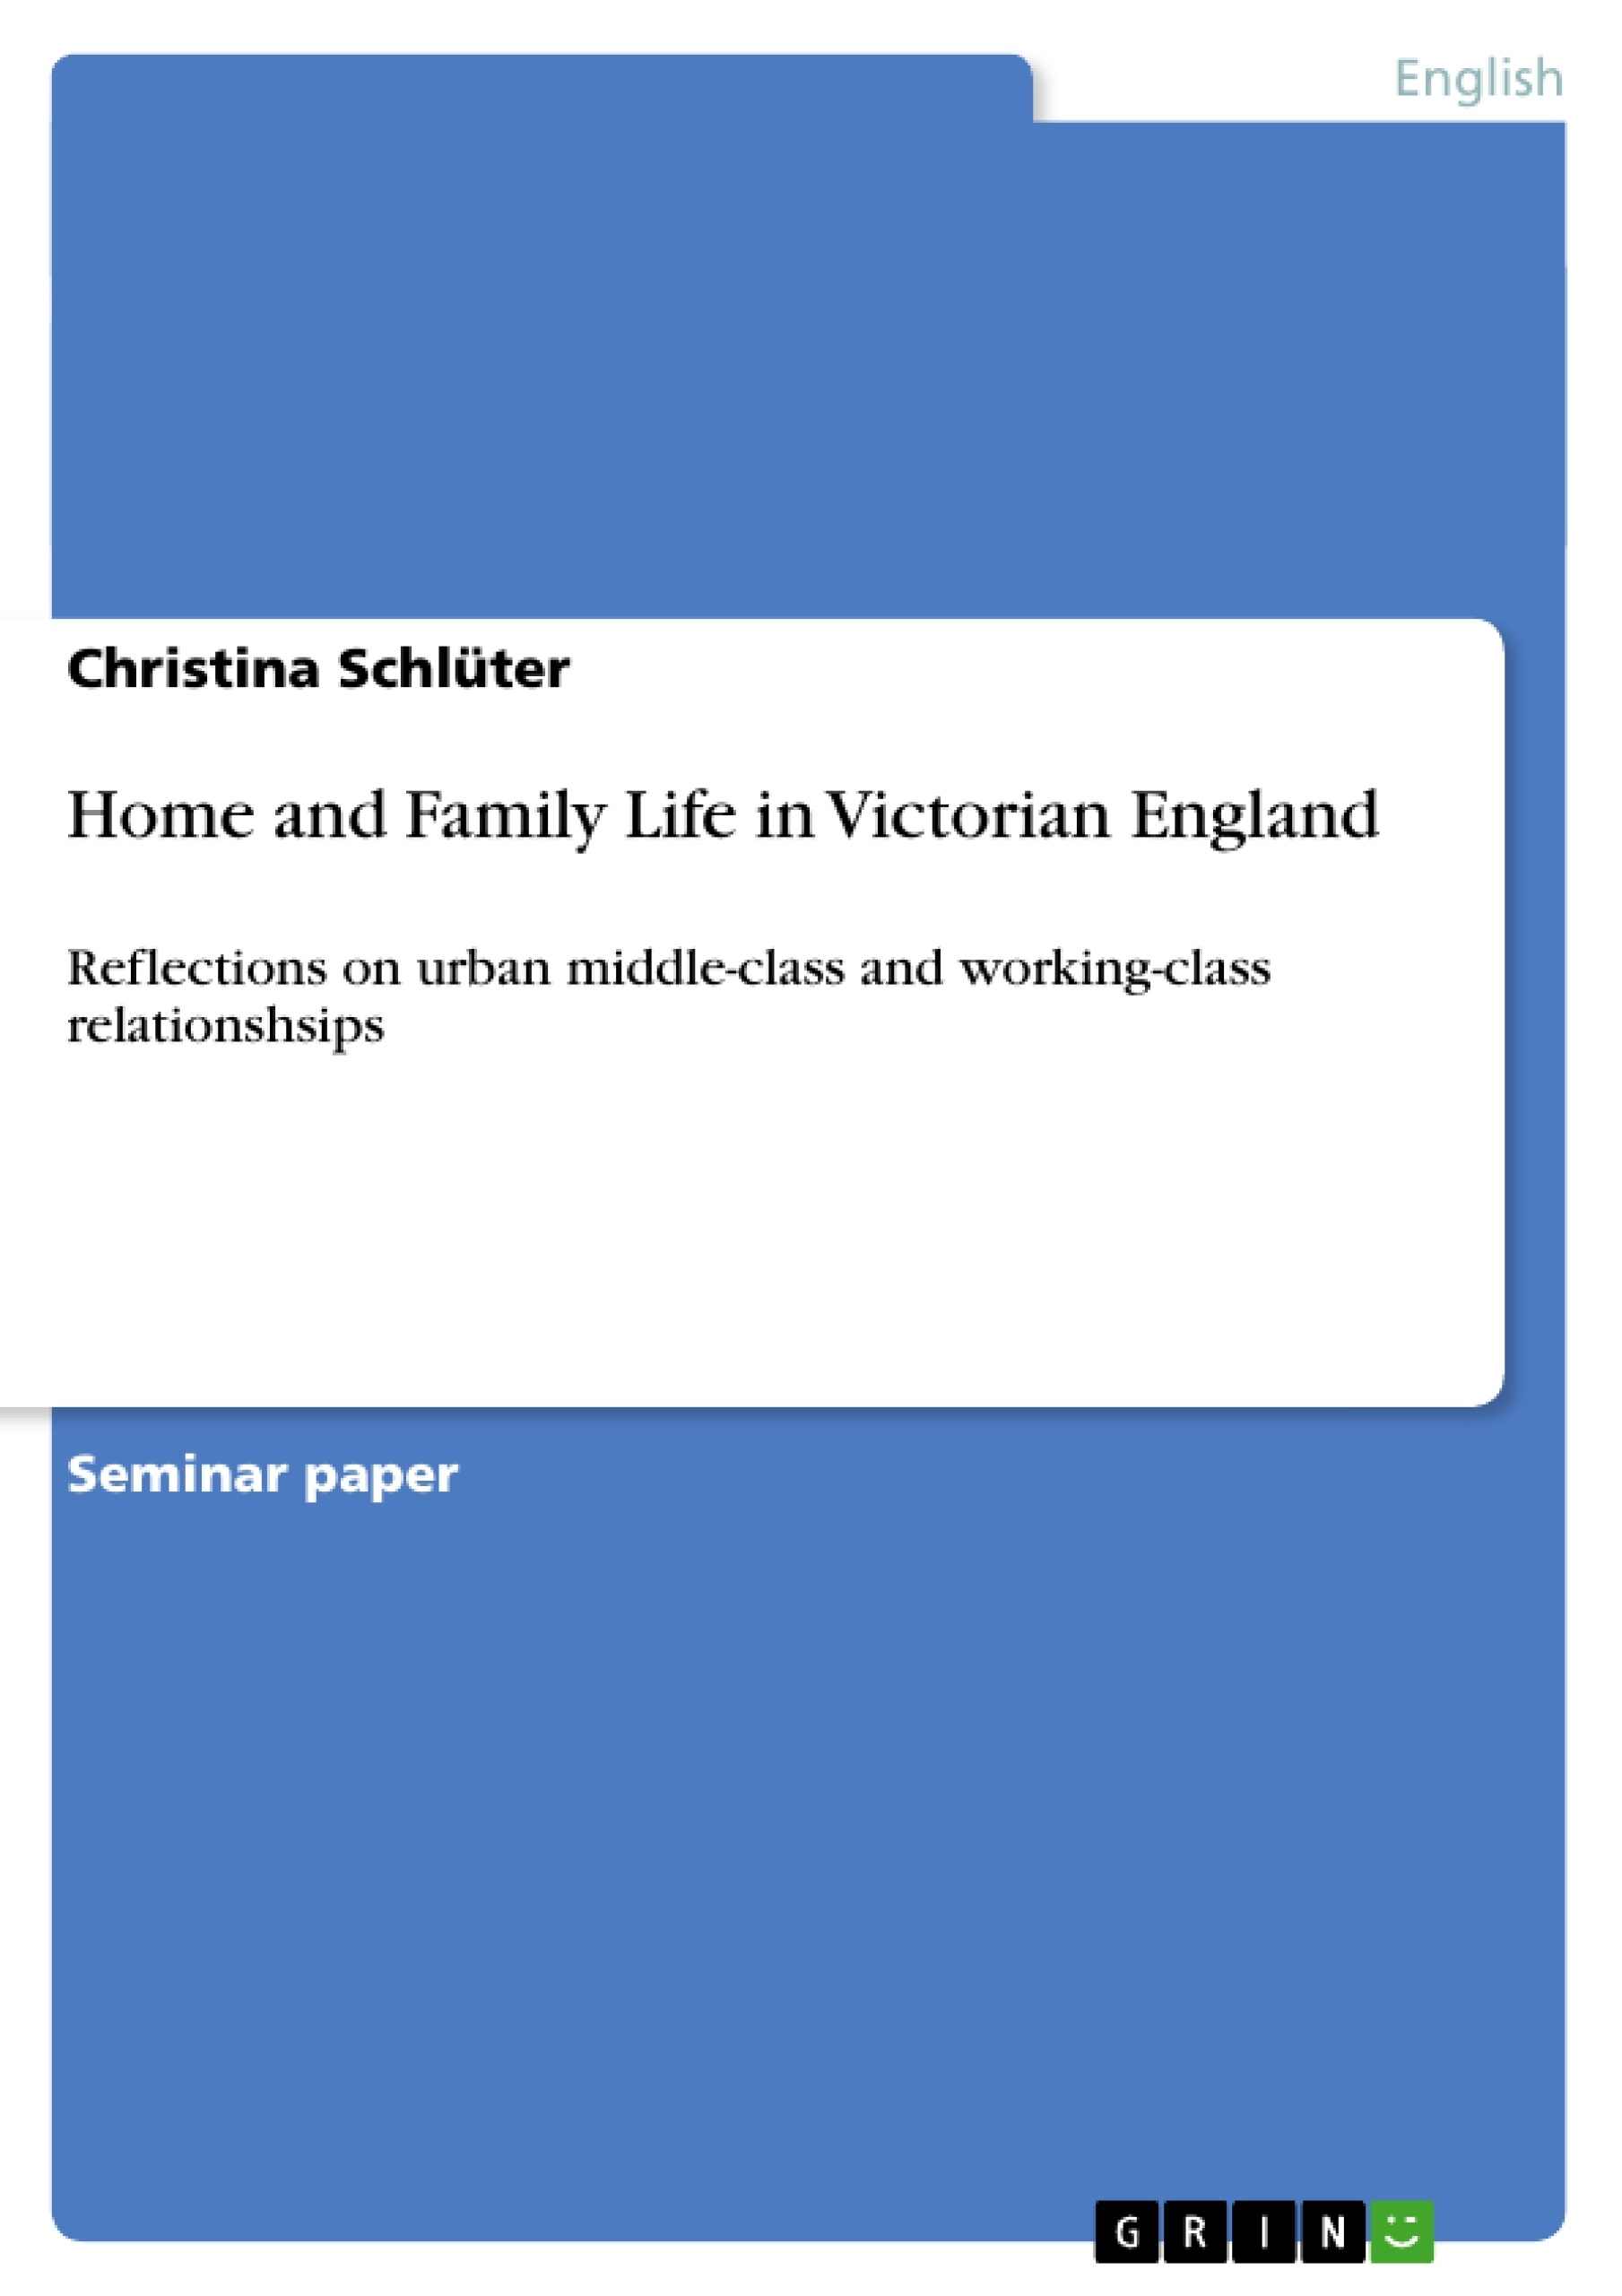 Title: Home and Family Life in Victorian England